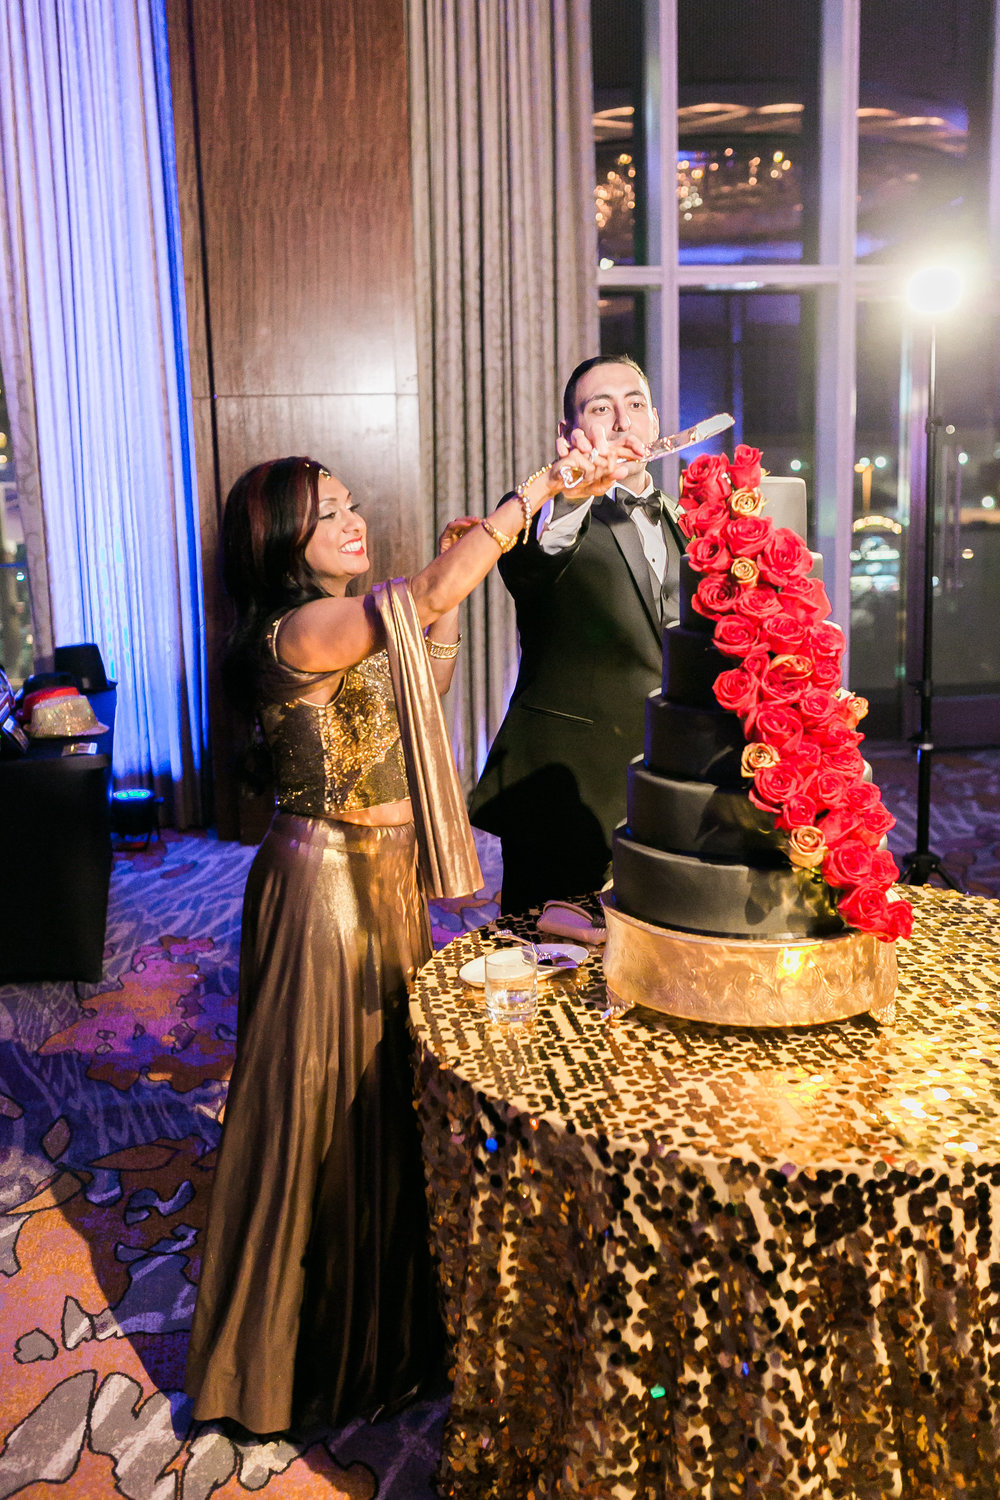 Cutting the cake in a saree.  Las Vegas Wedding Planner Andrea Eppolito shares this multicultural wedding.  Photo by J.Anne Photography. Wedding at Mandarin Oriental Las Vegas.  Decor by DBD Vegas.